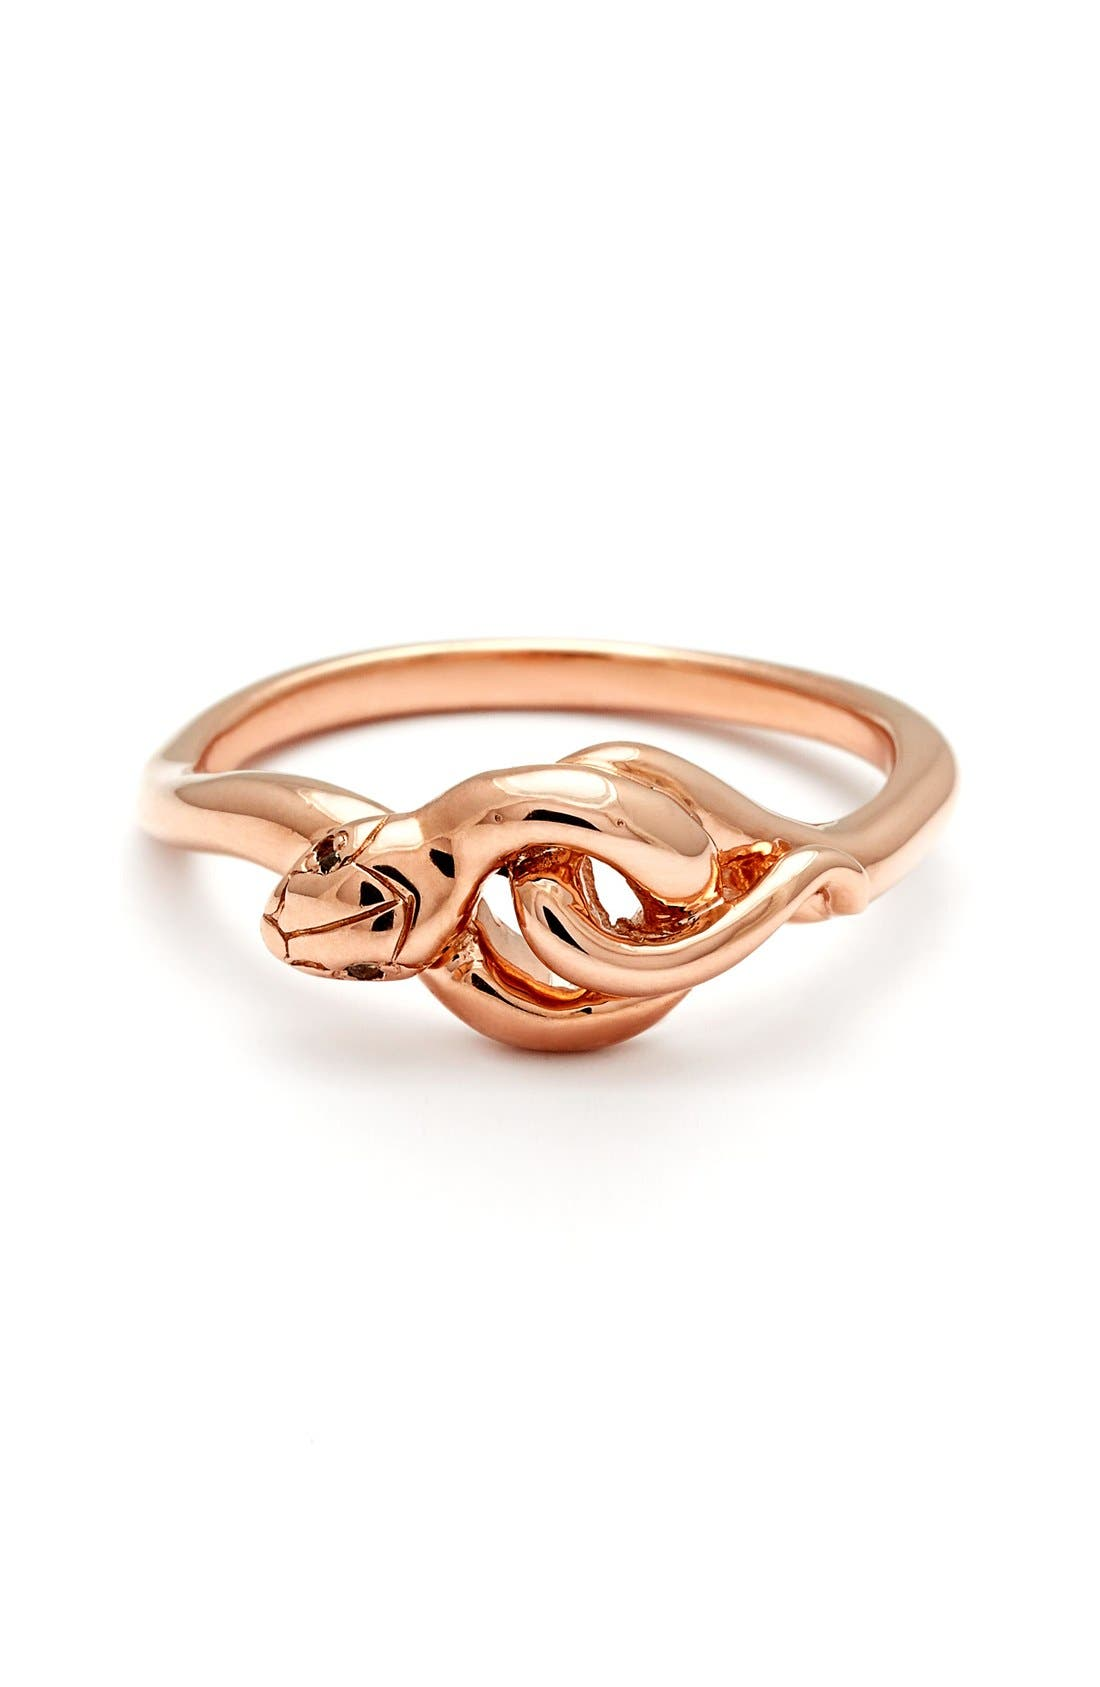 Main Image - Anna Sheffield 'Small Serpent' Rose Gold Ring